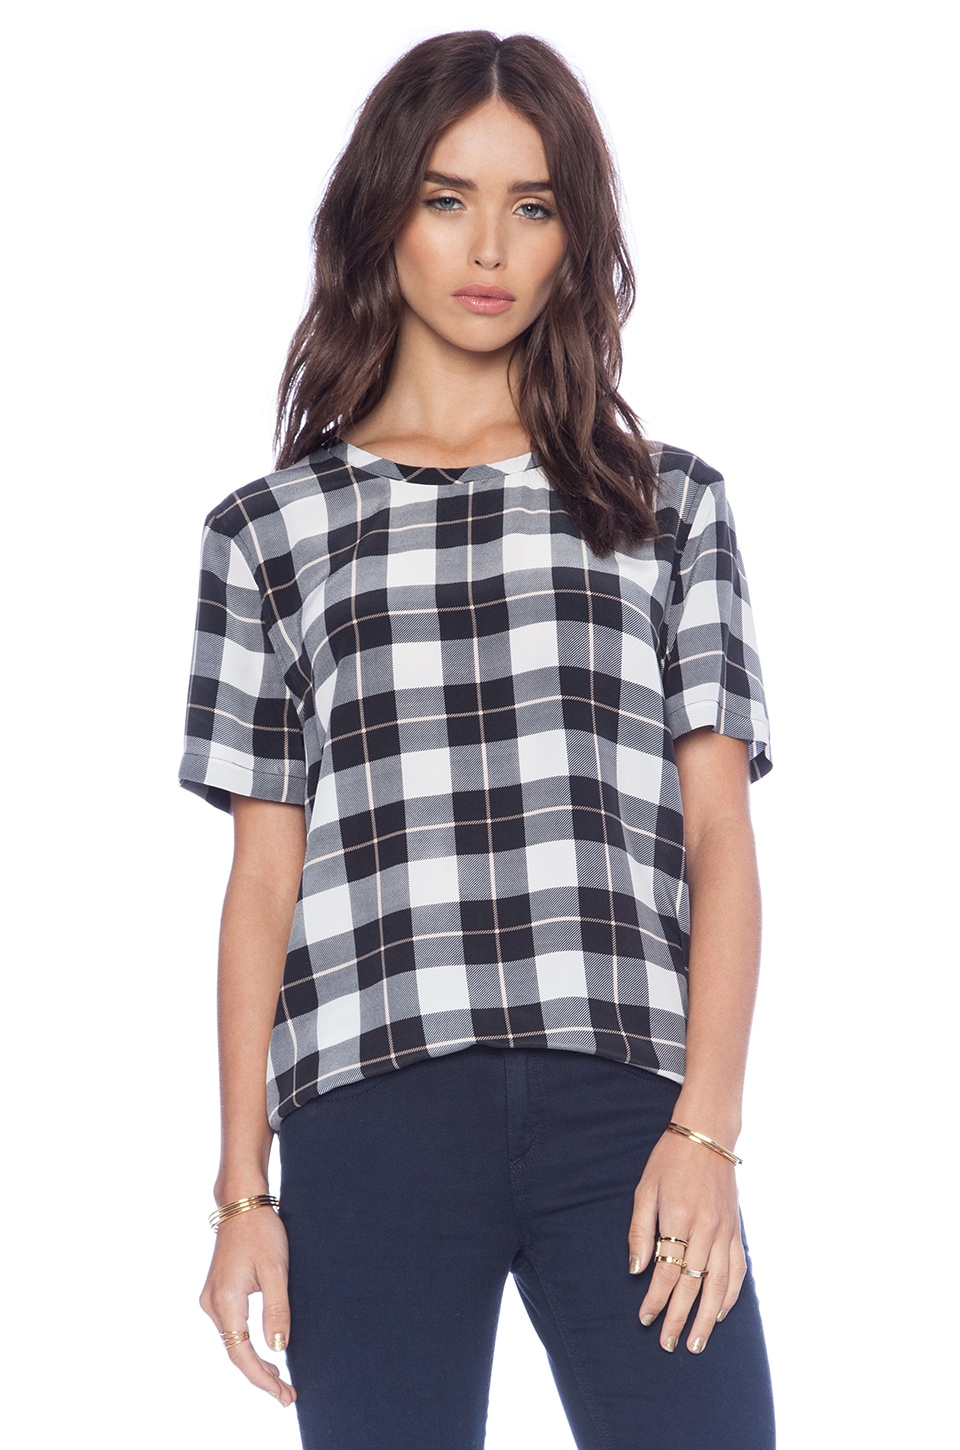 Equipment Riley Pirate Plaid Tee in Bright White Multi